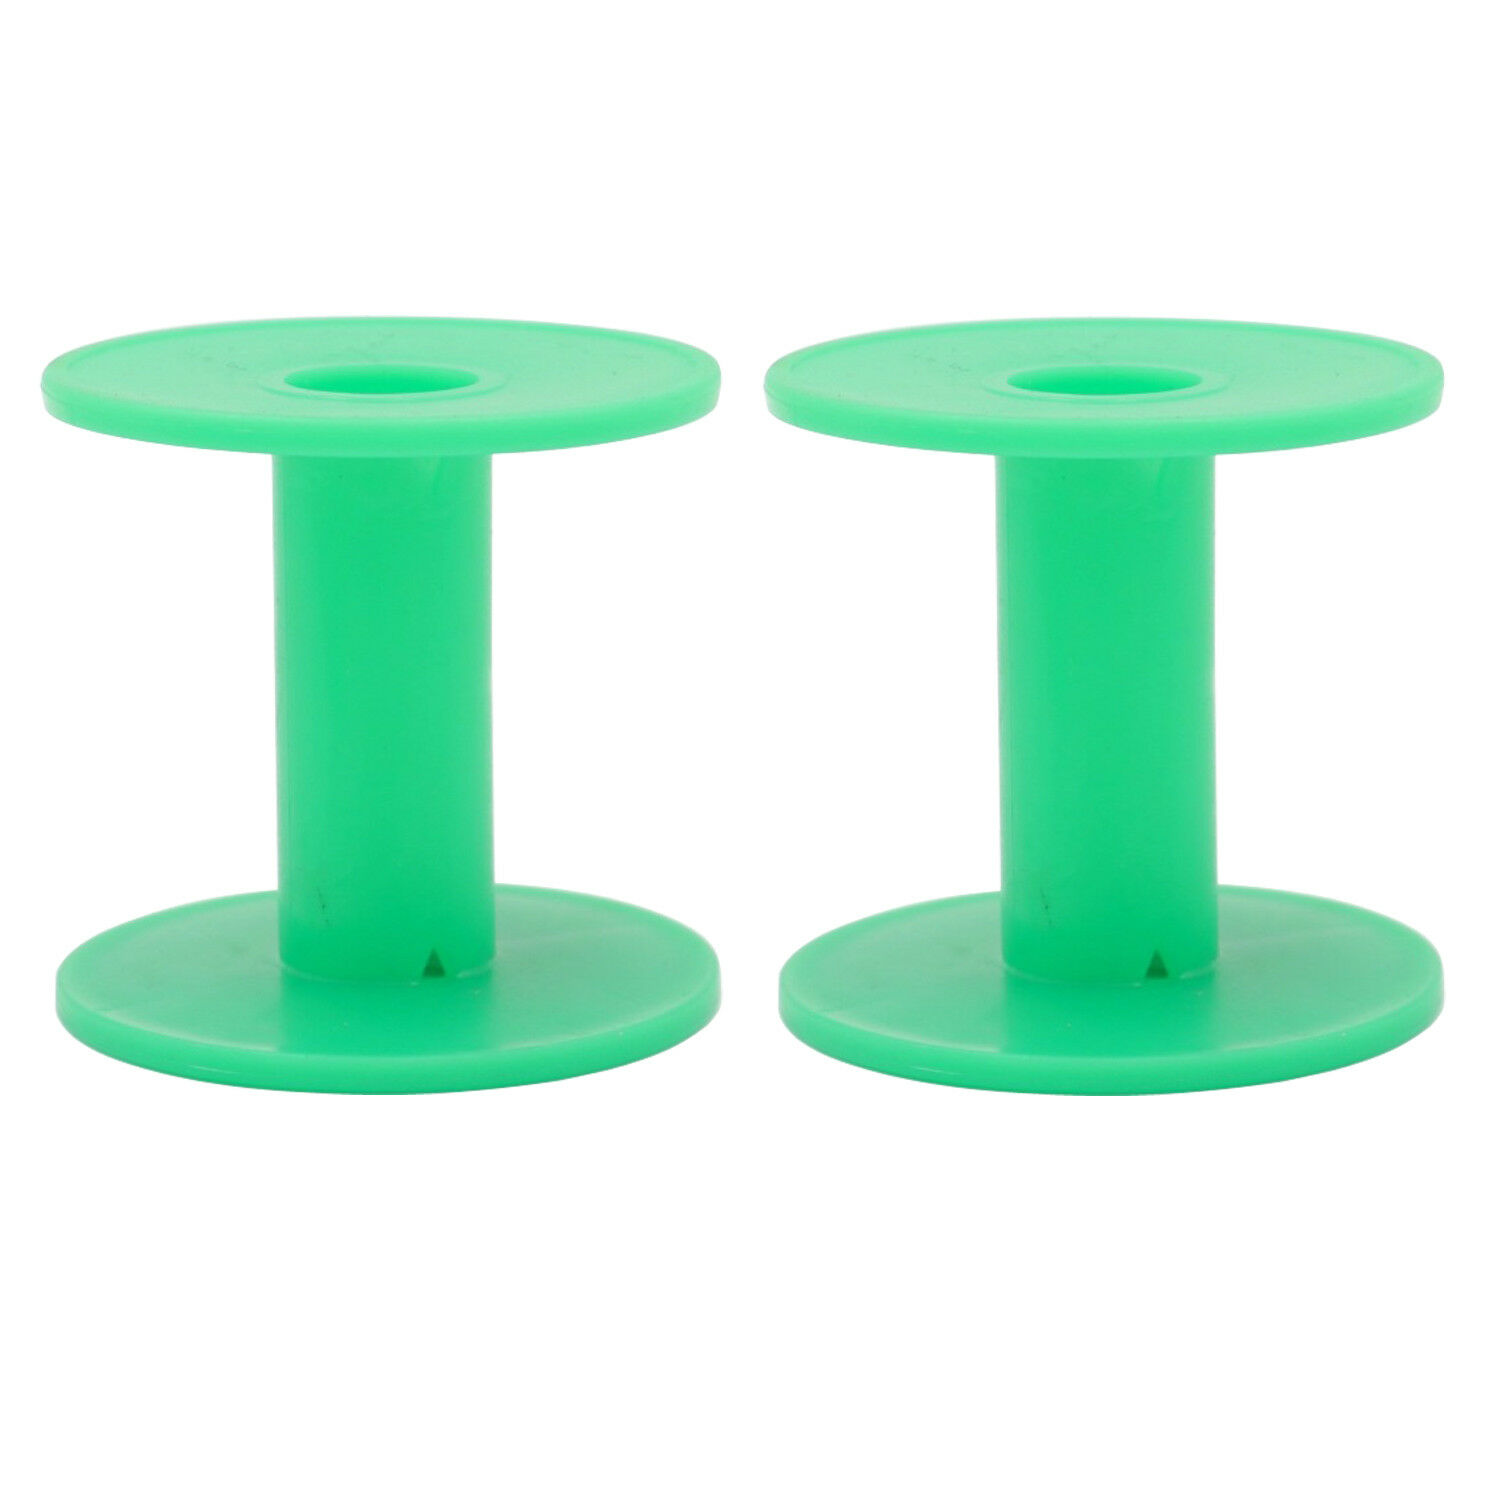 2PCS WIRE BOBBIN ROUND COIL 69x71mm ABS Plastic SHELF For Frequency Divider Speaker Crossover Wire Transformer Inductor DIY